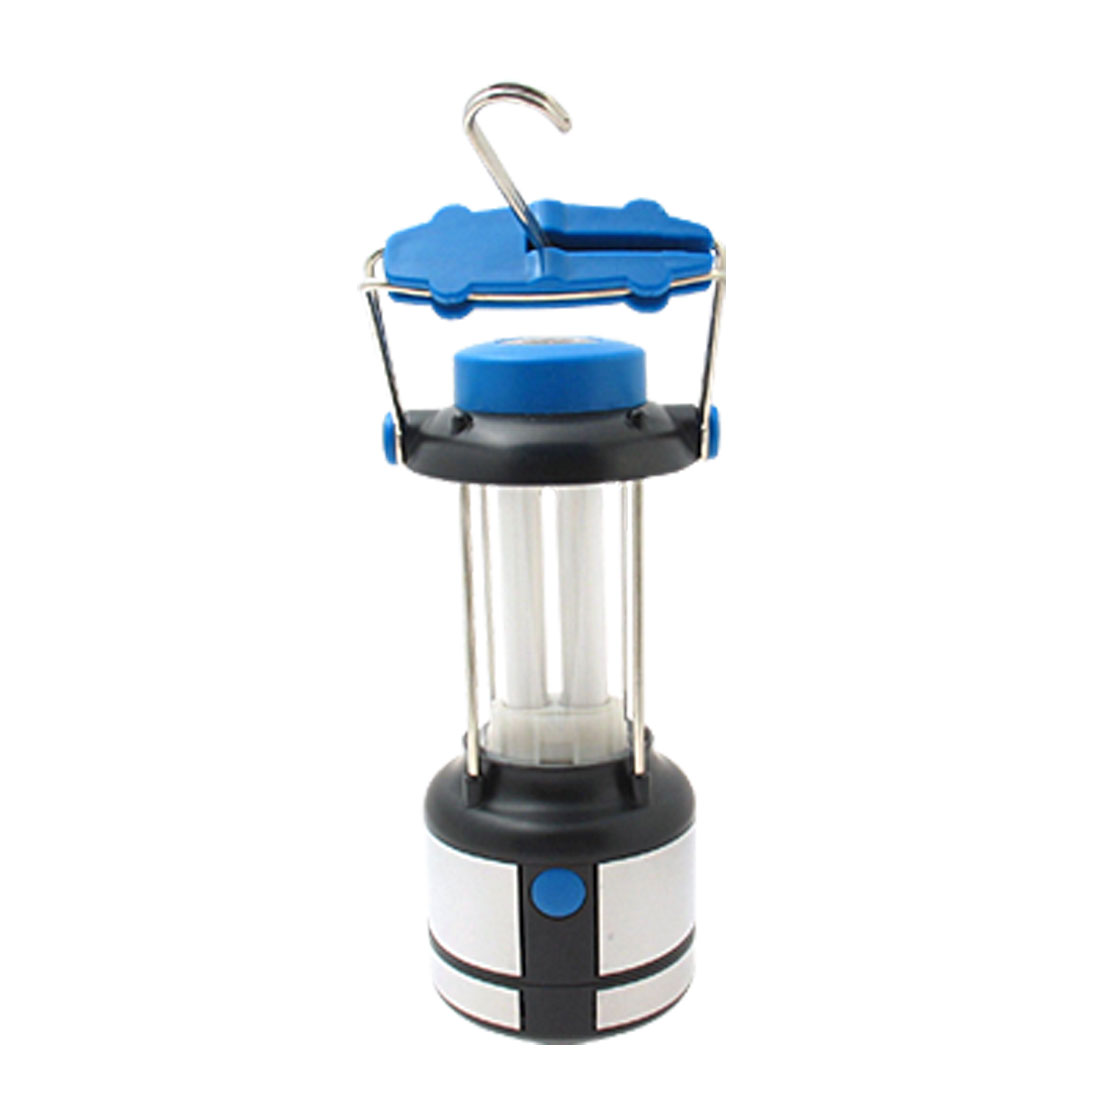 Blue Multifunction Camping Super Bright Decorative Compass Lantern